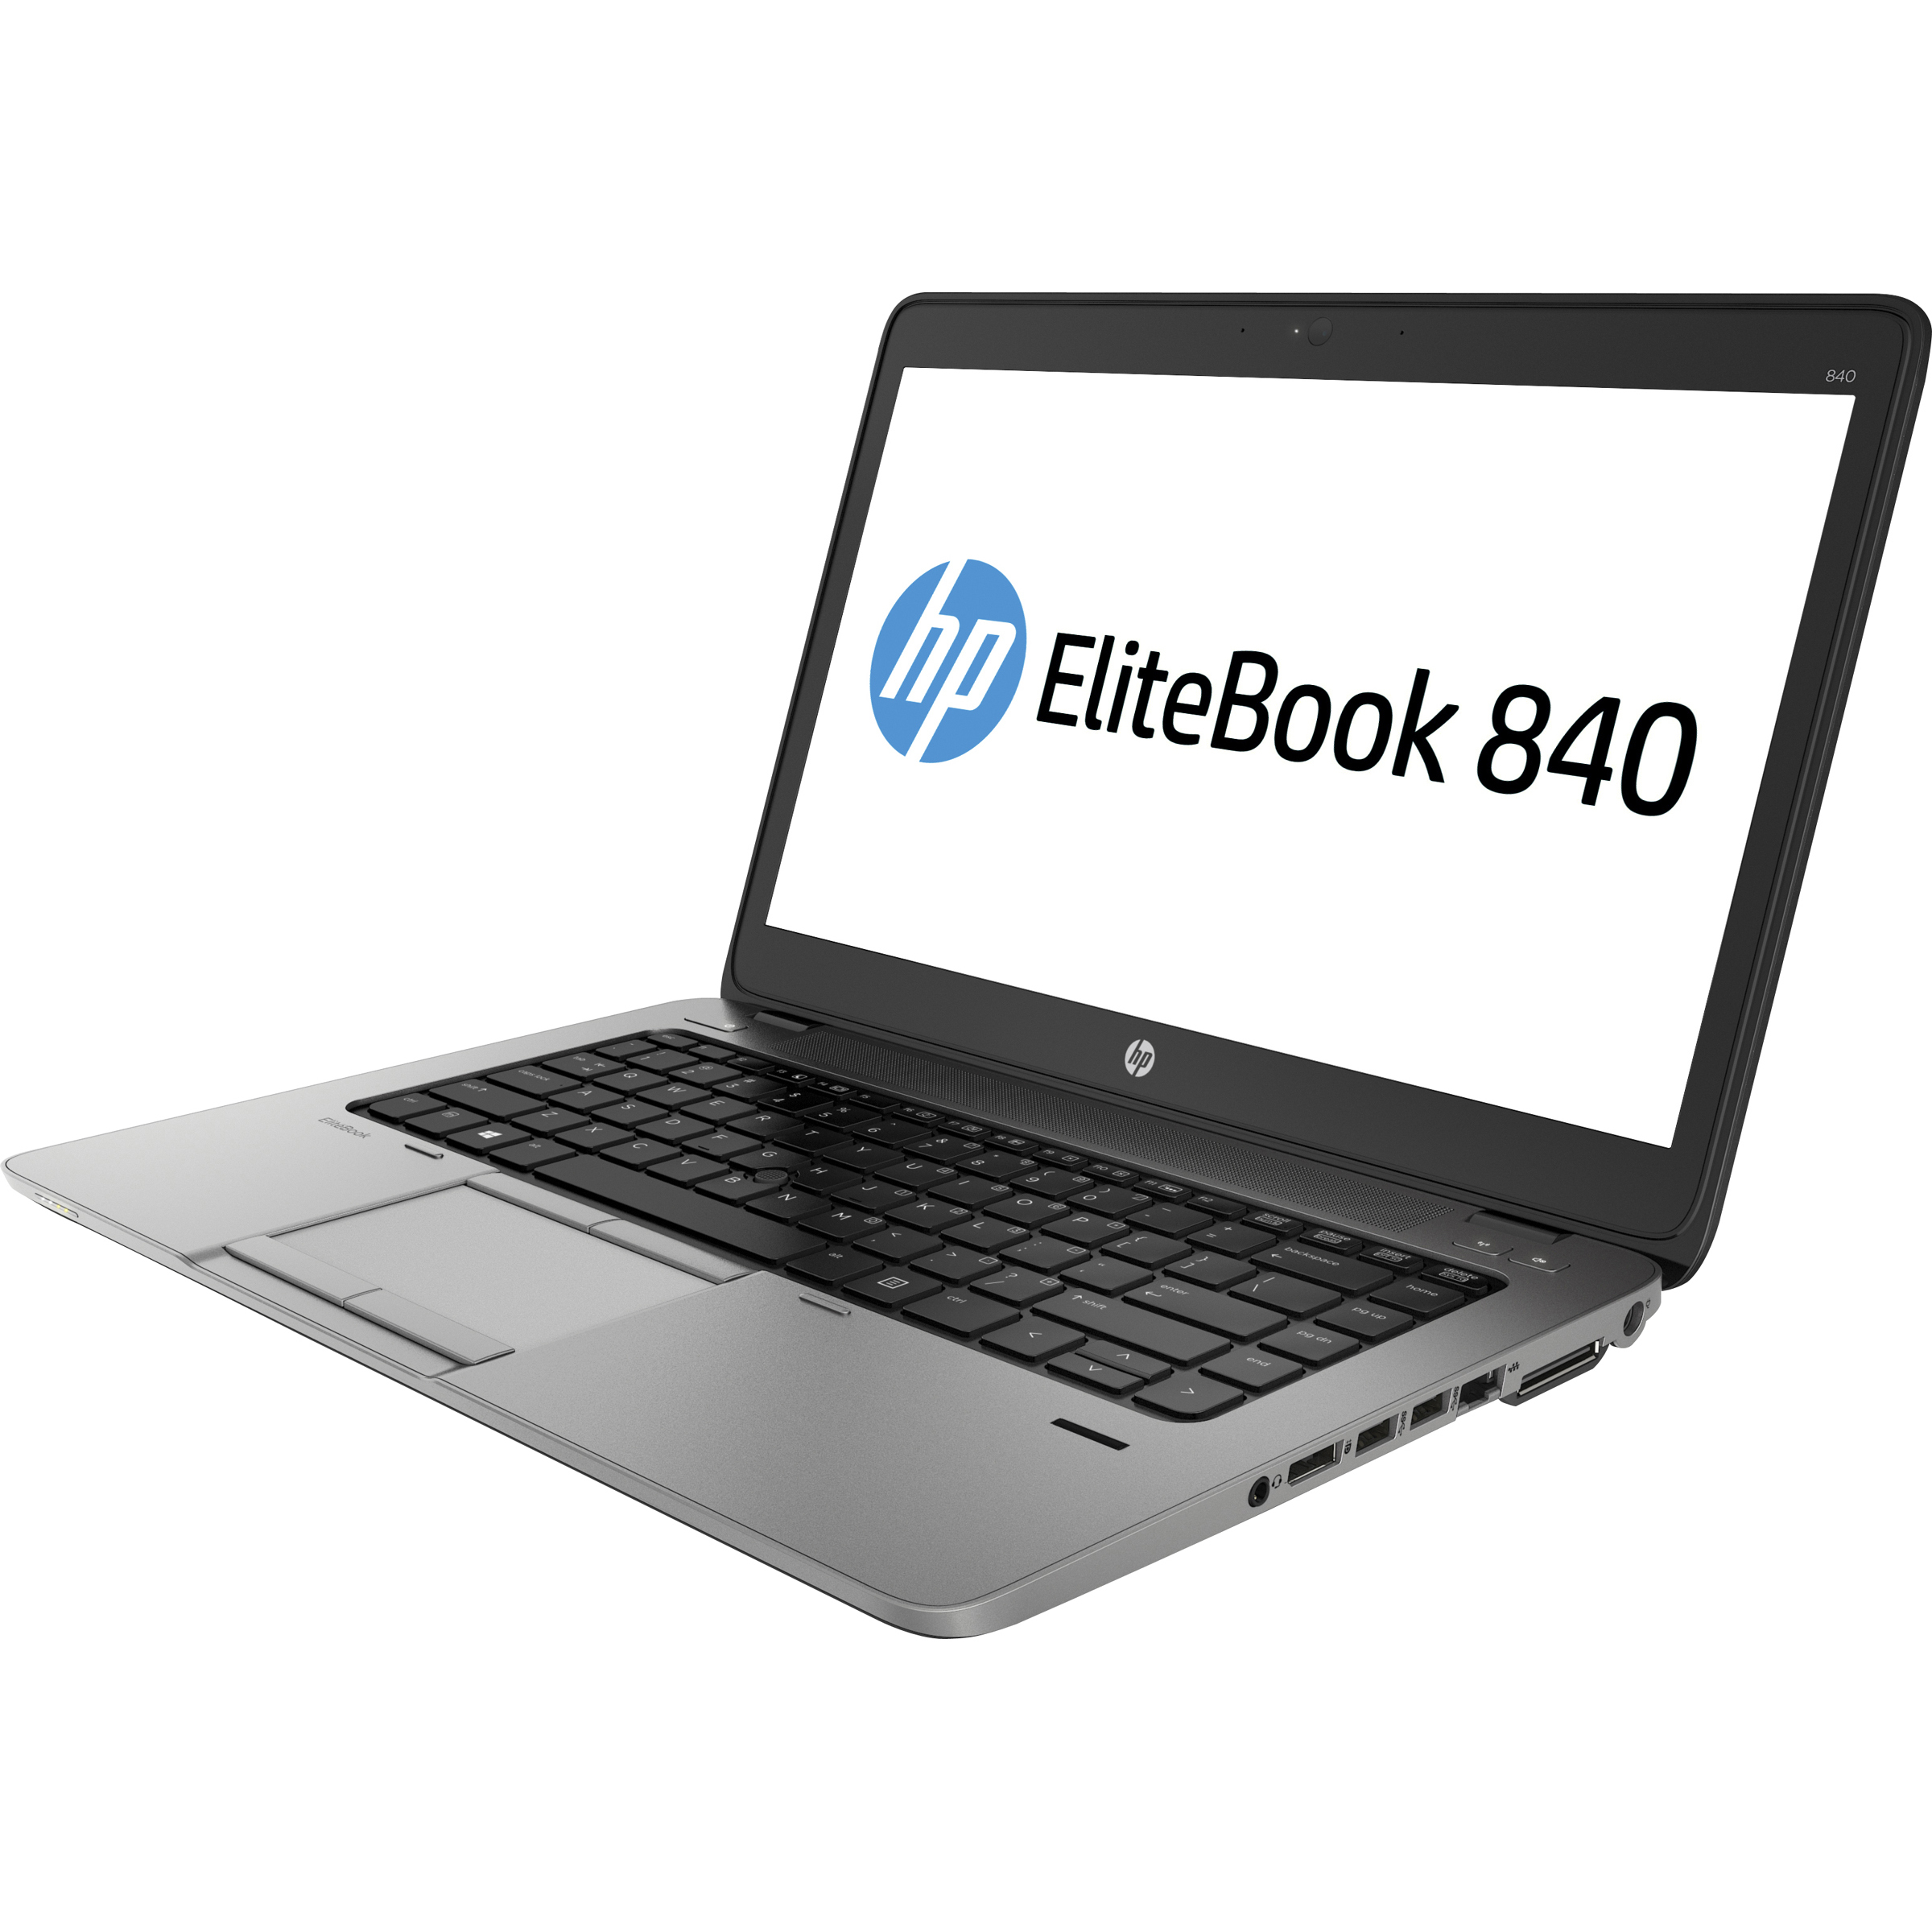 HP EliteBook 840 G1 35.6 cm 14inch LED Notebook - Intel Core i5 i5-4200U 1.60 GHz